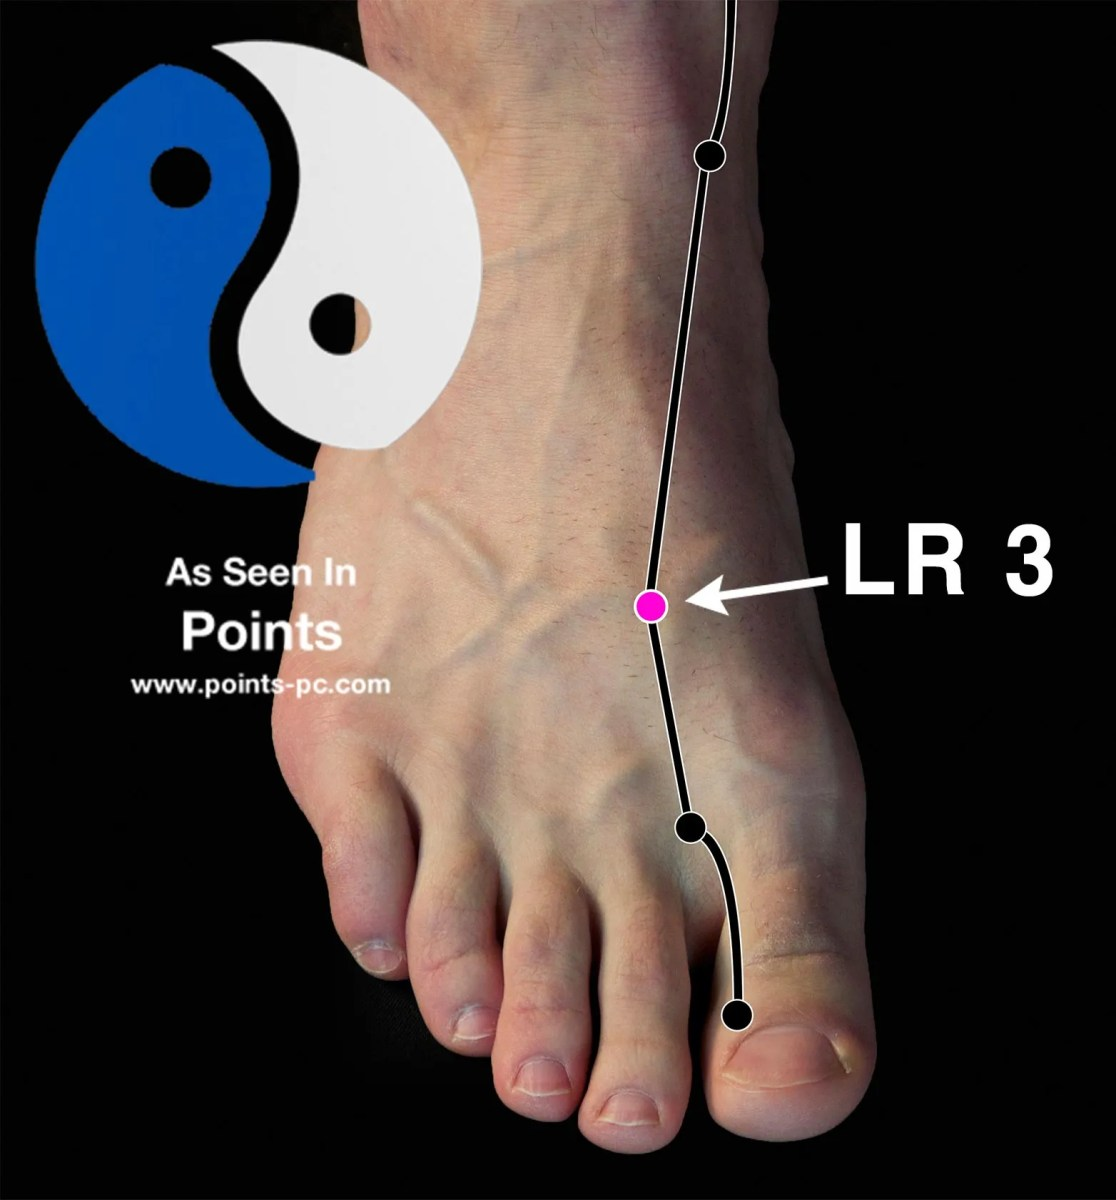 Acupuncture Point: Liver 3